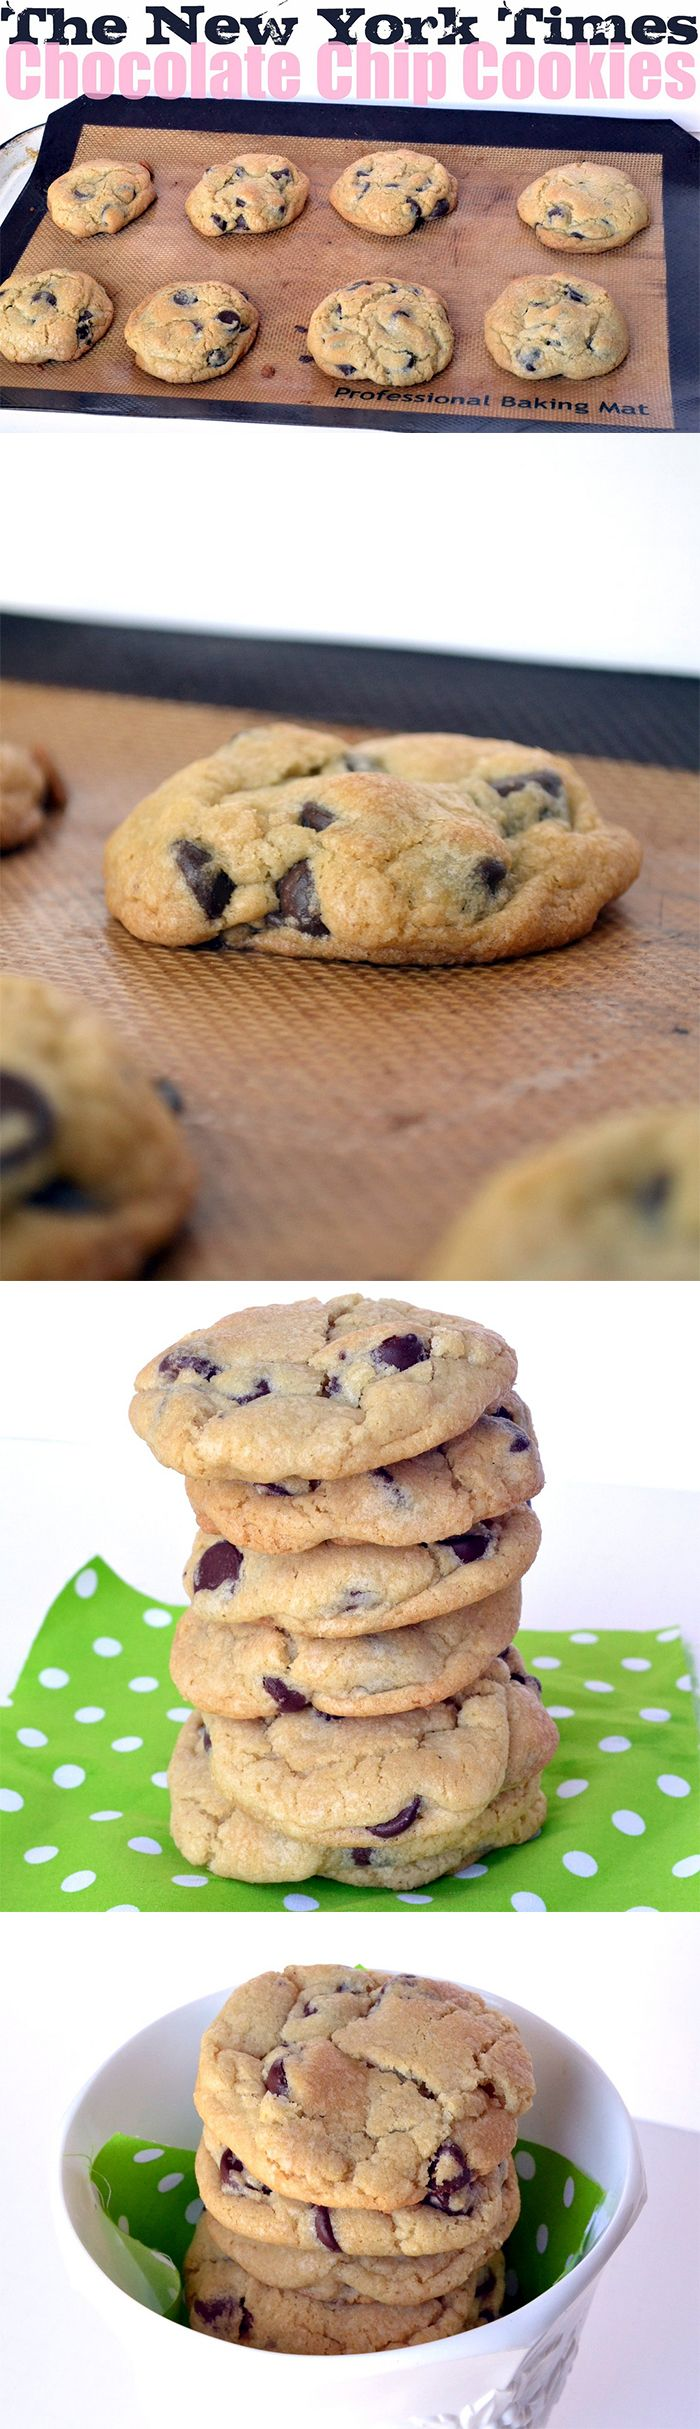 The New York Time #chocolate chips cookies #Recipe  One of the most #yummy chocolate cookies ever.  Follow me for more delicious desserts :)